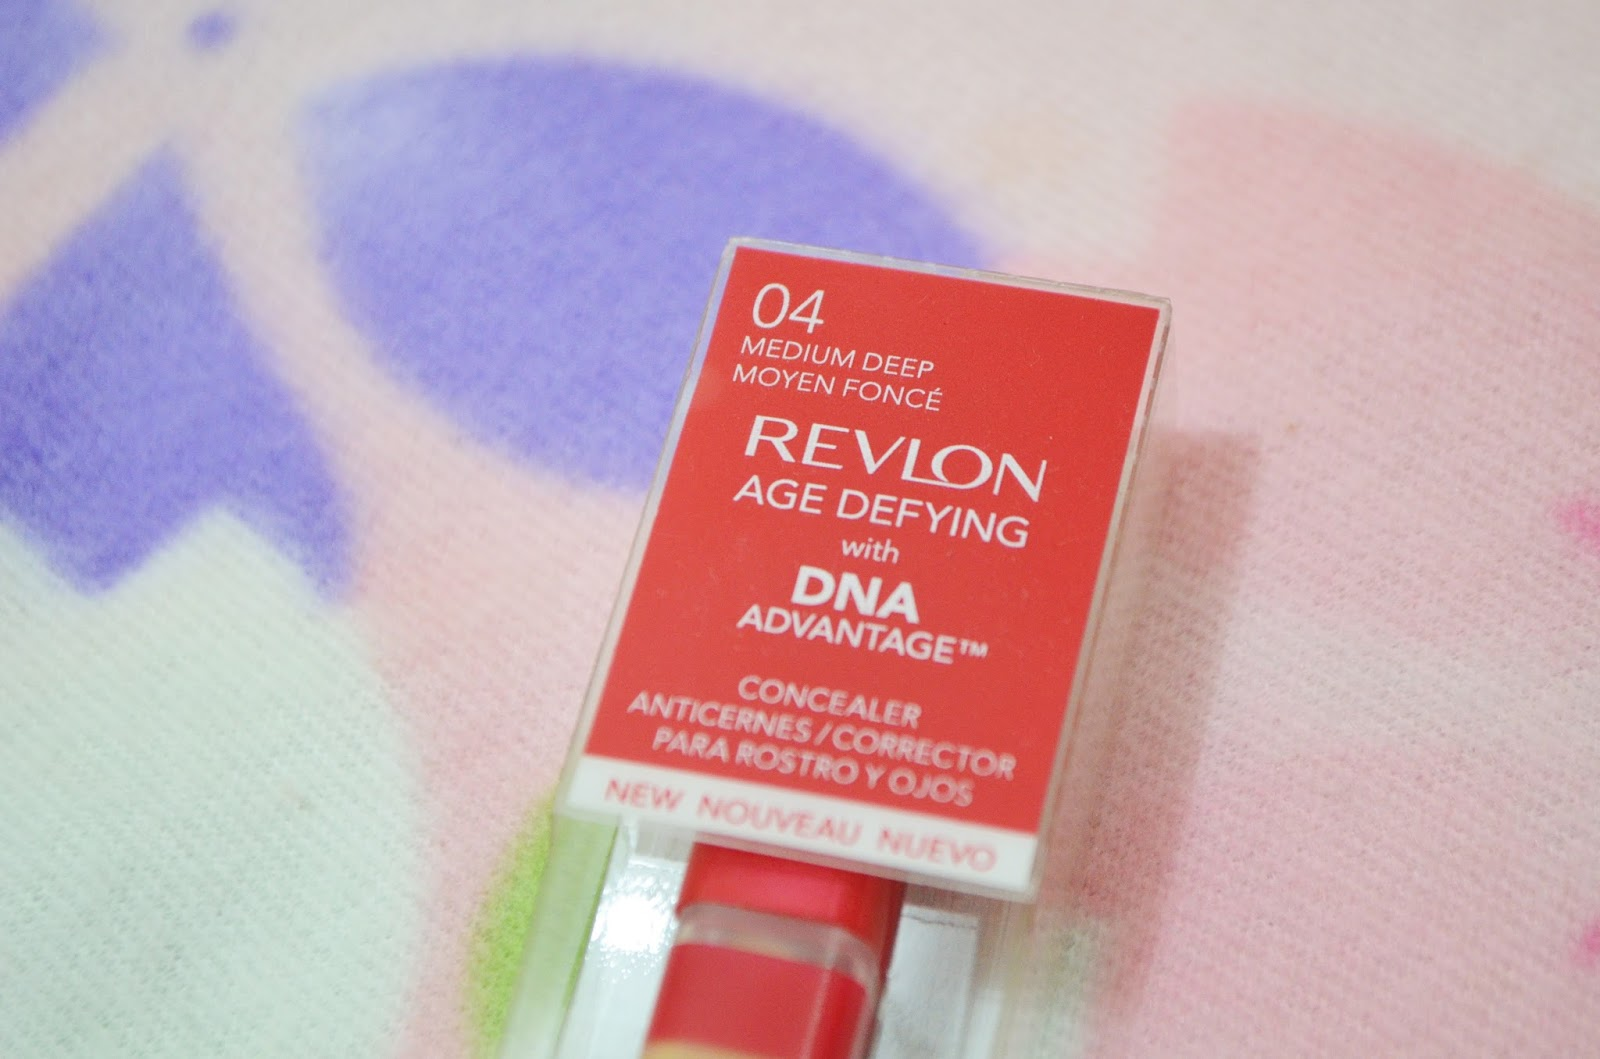 Revlon Age Defying with DNA Advantage Concealer Review